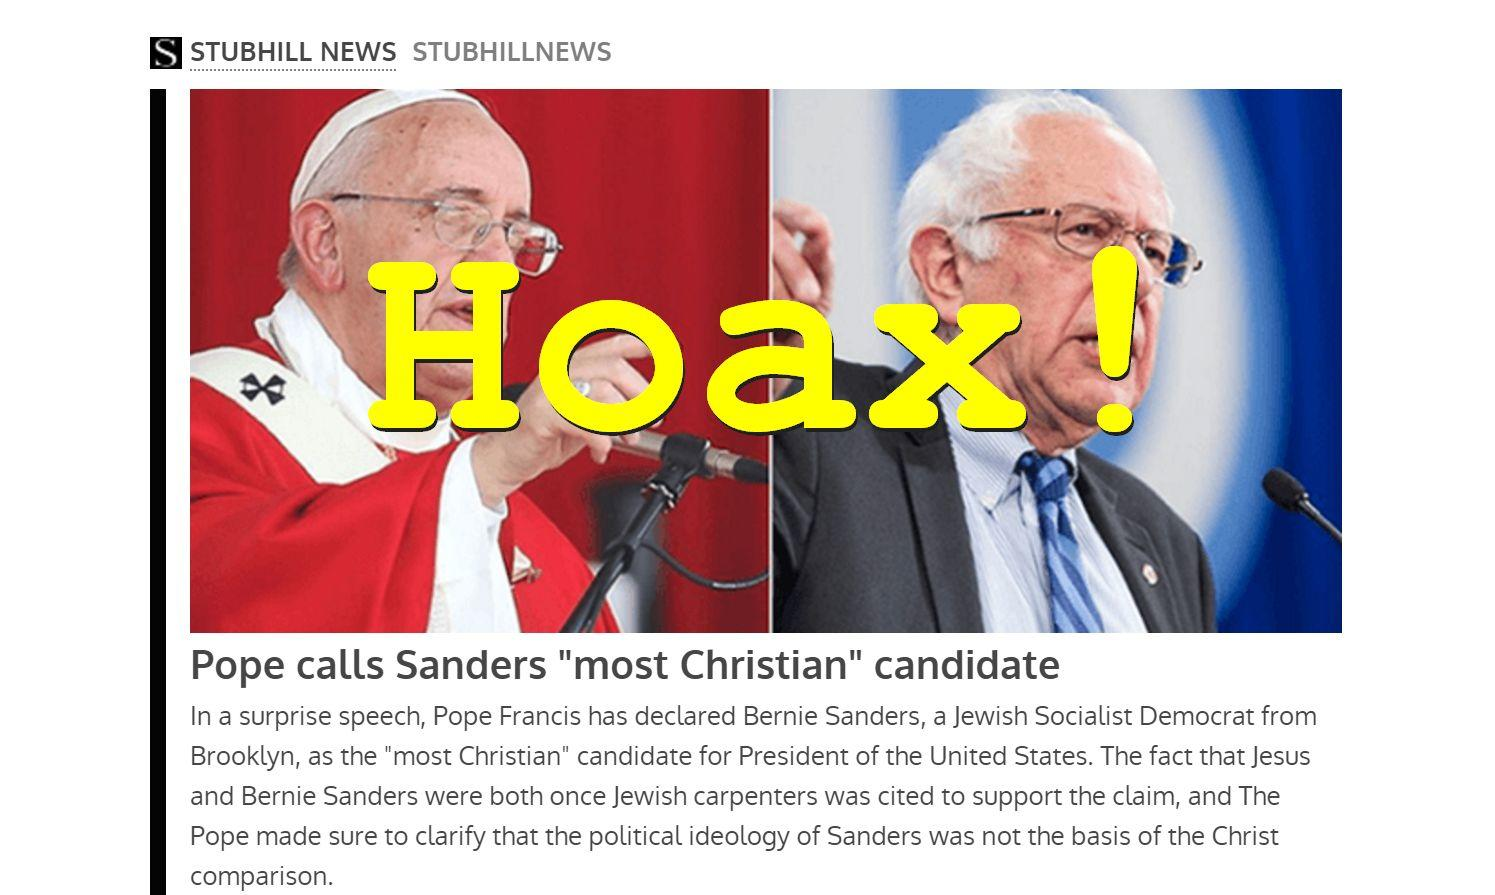 Hoax Alert: The Pope DID NOT Call Sanders Most Christian Candidate